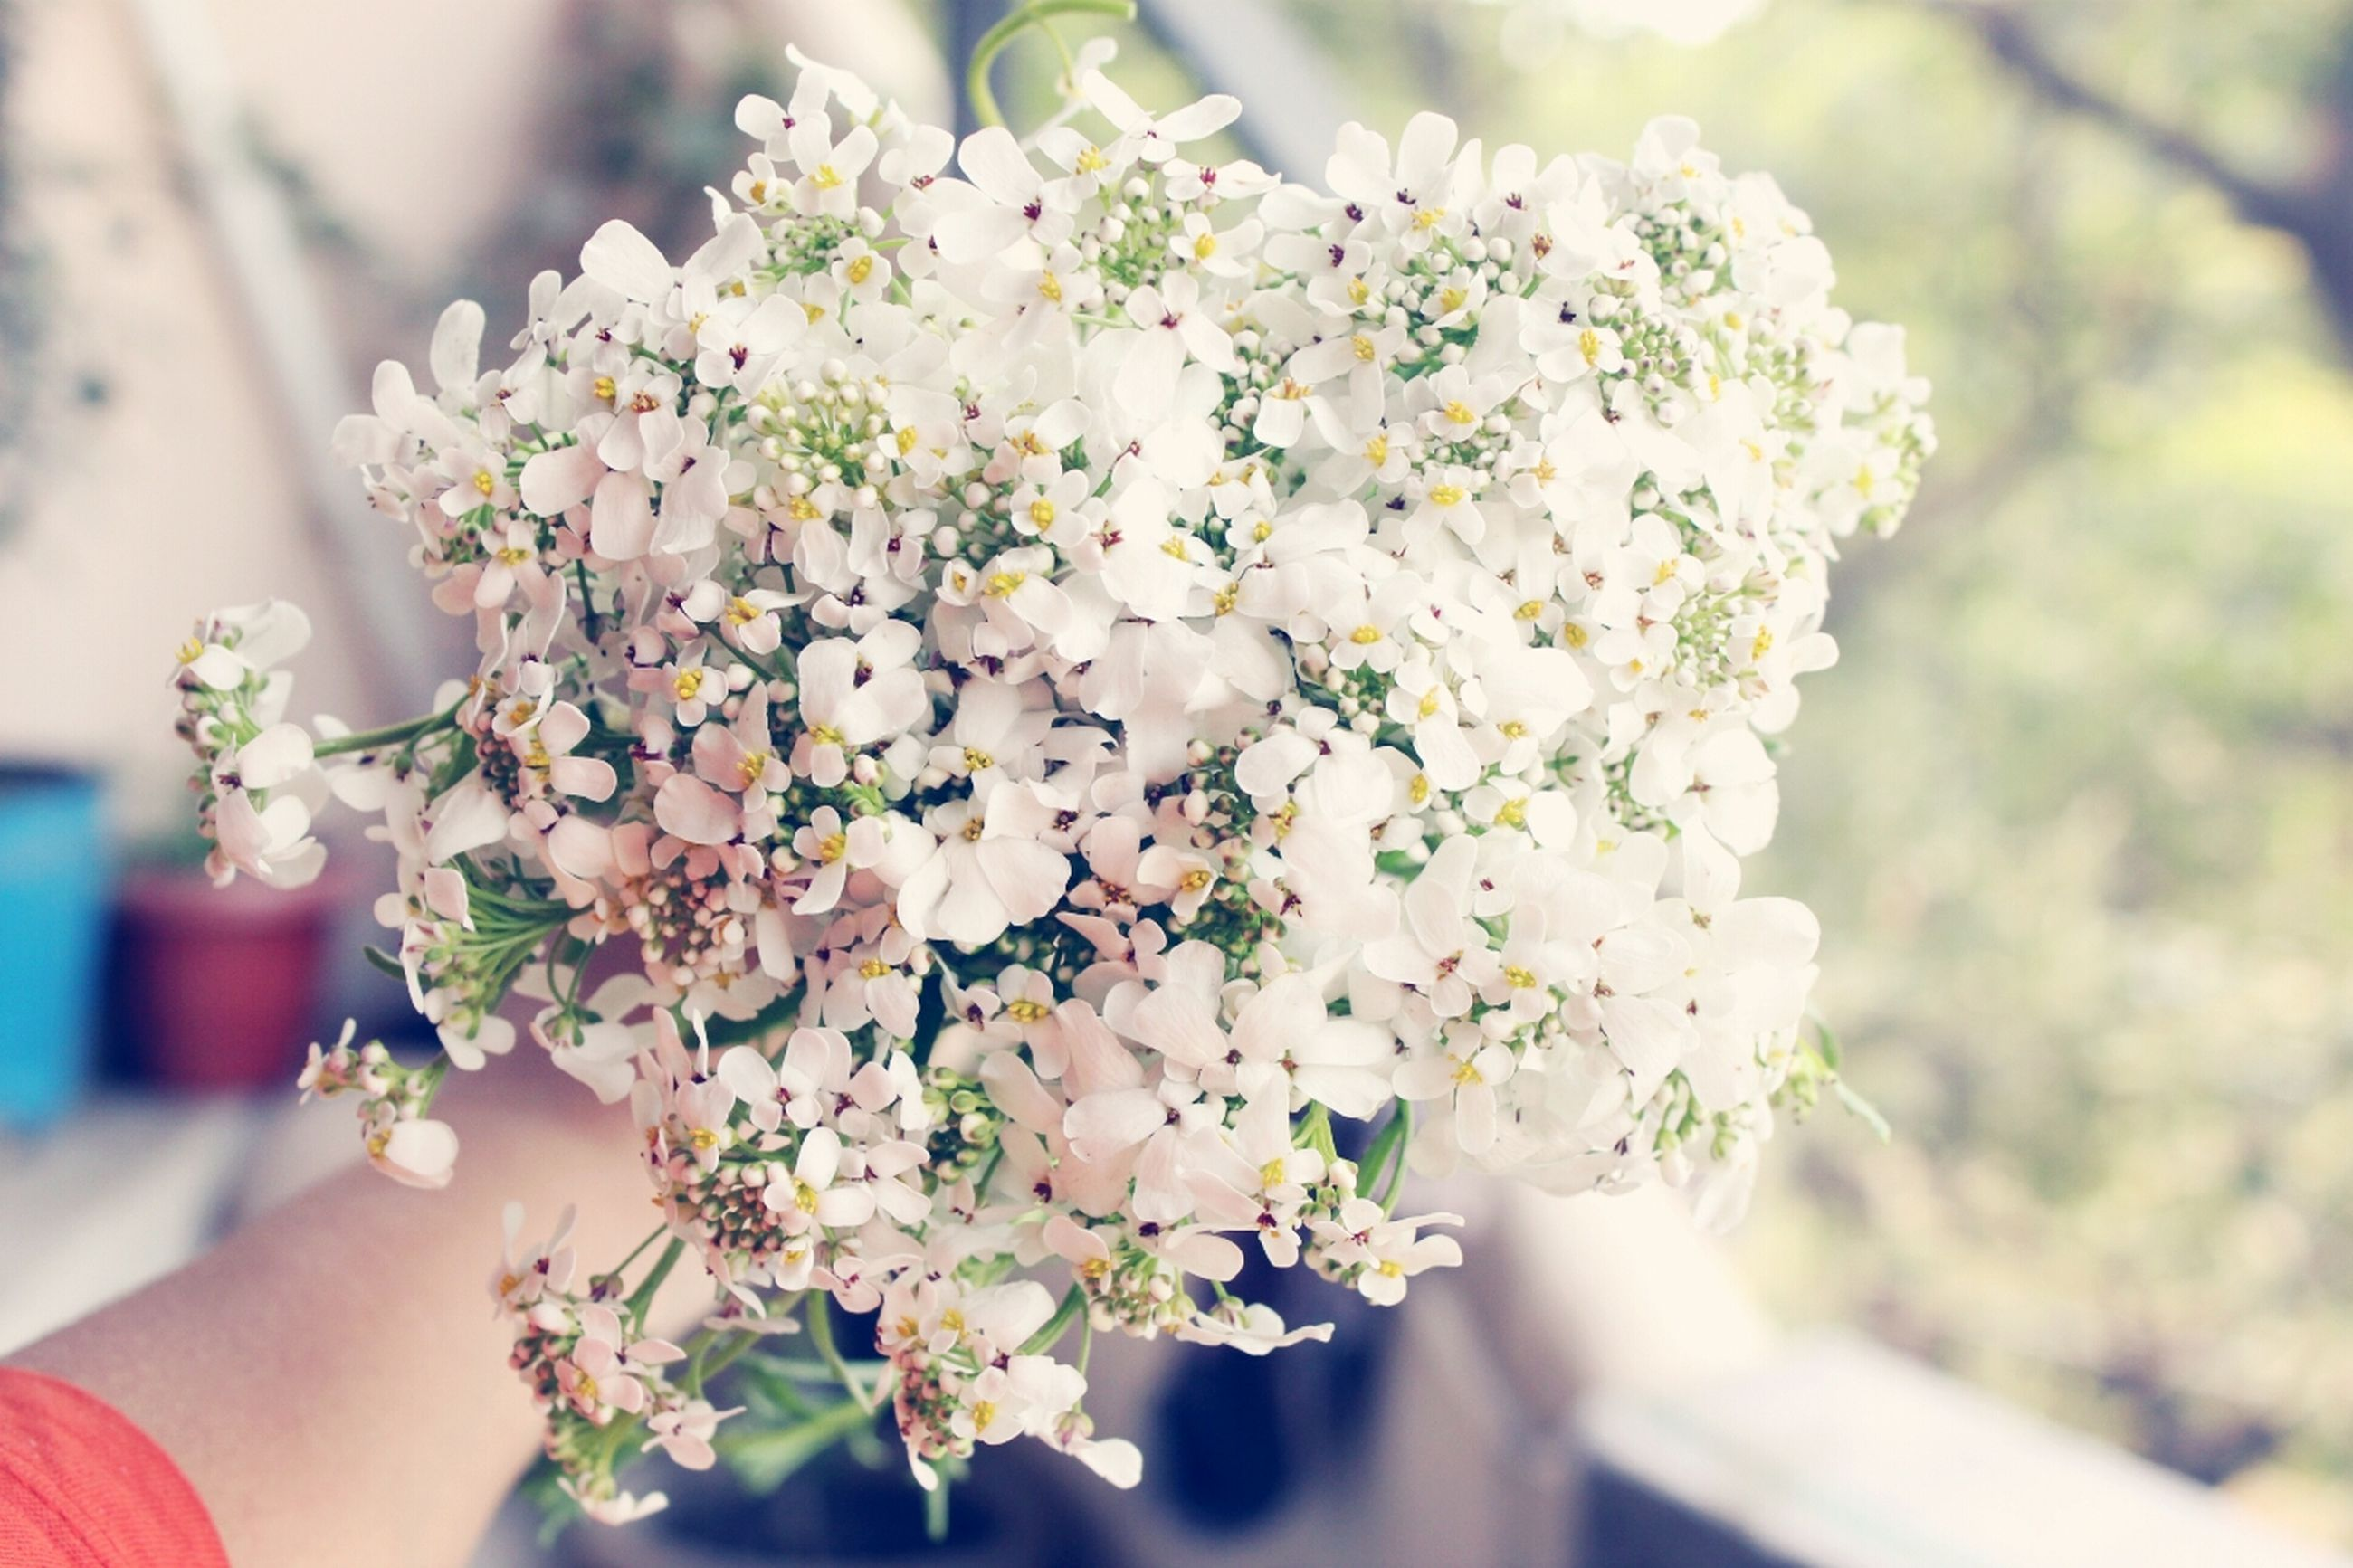 flower, person, freshness, holding, focus on foreground, fragility, petal, part of, white color, cropped, close-up, lifestyles, blossom, unrecognizable person, flower head, beauty in nature, nature